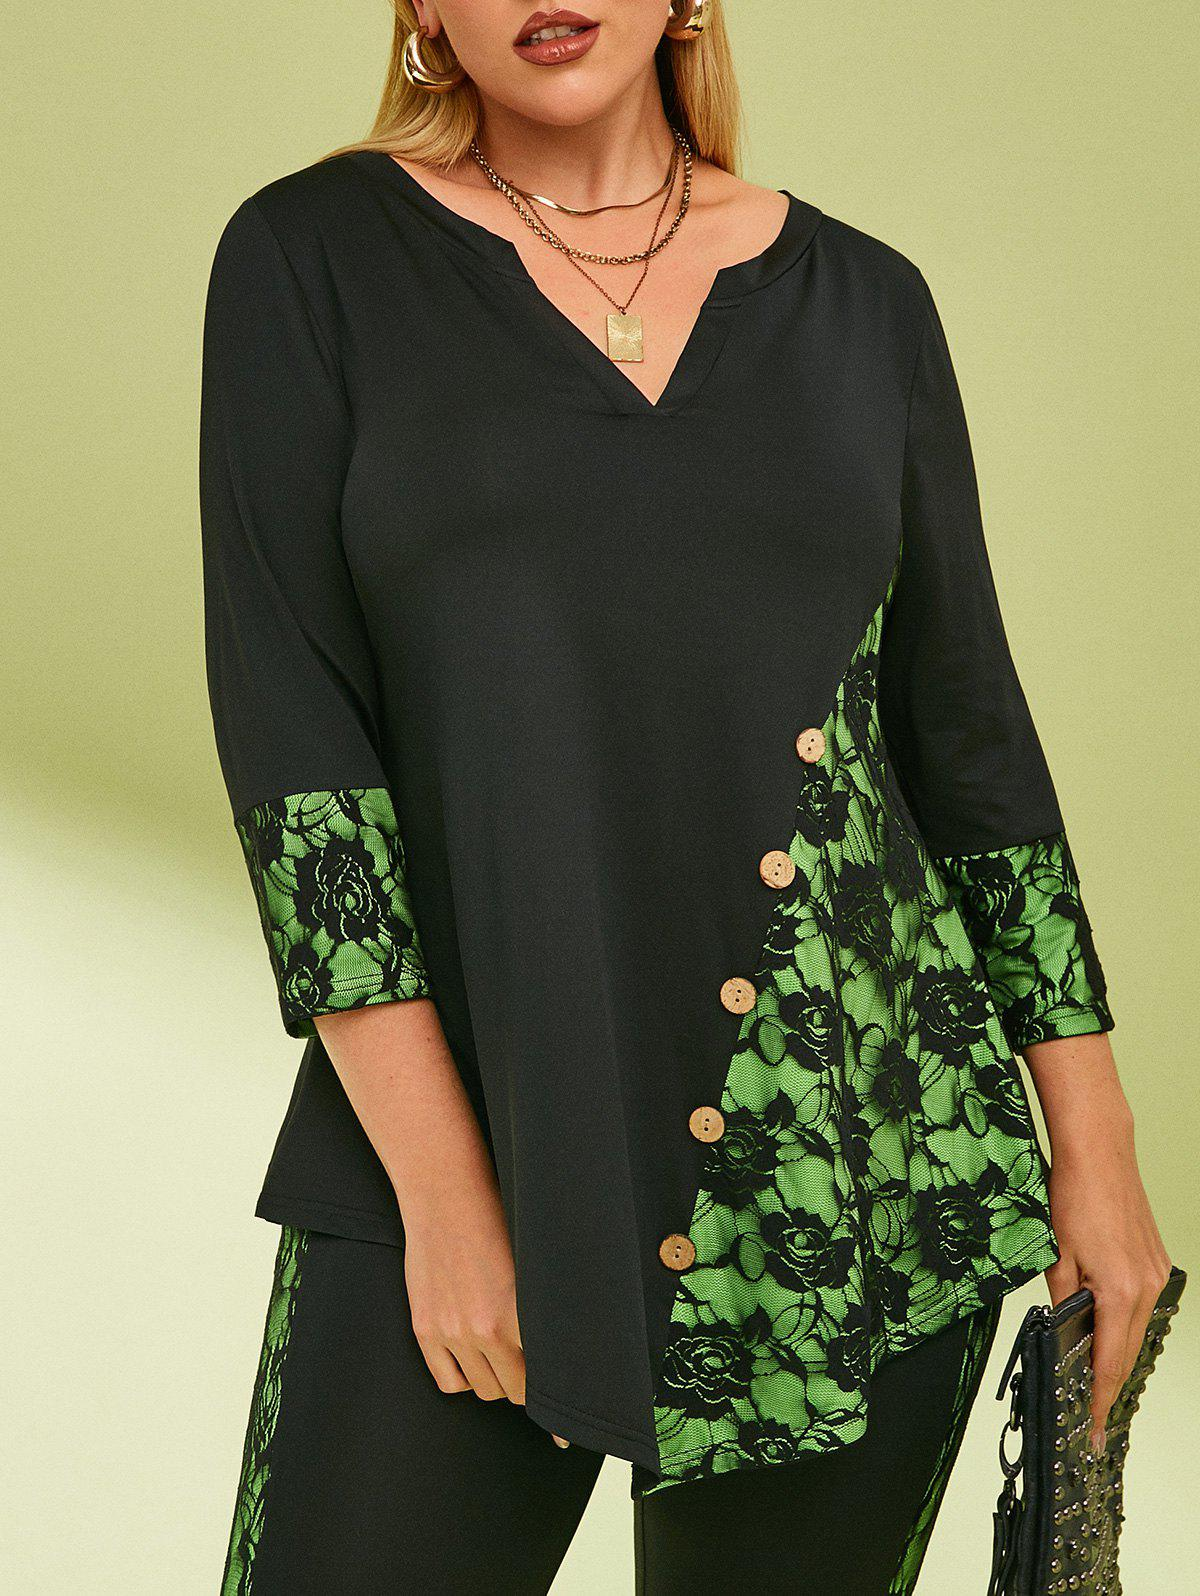 Lace Panel Buttoned Notched Collar Plus Size Top - BLACK 5X